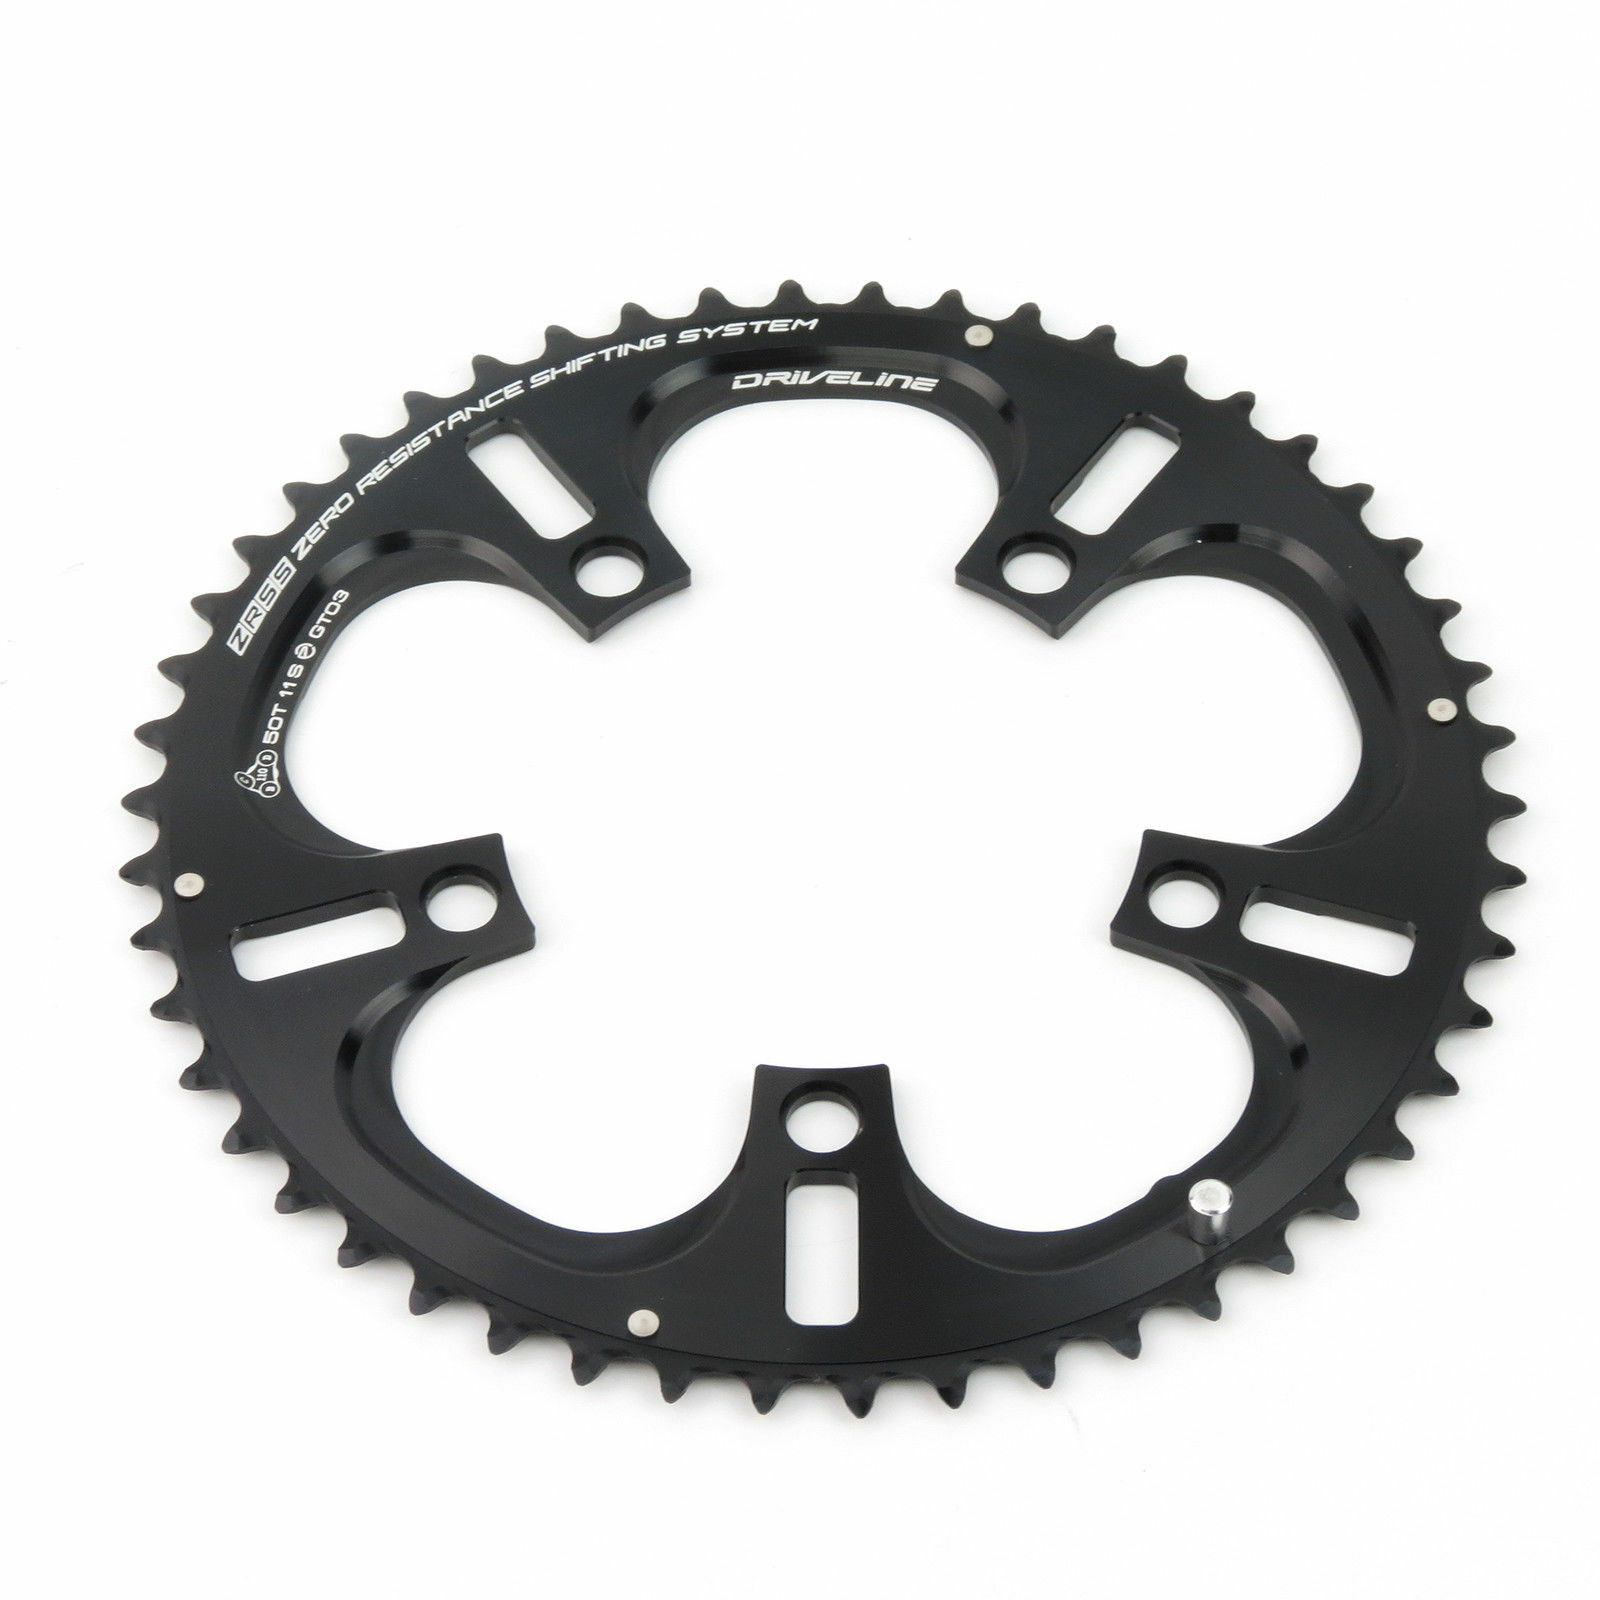 Driveline ZRSS GT03 11-speed 50T BCD 110mm Road Bike Bicycle Chainring Guard